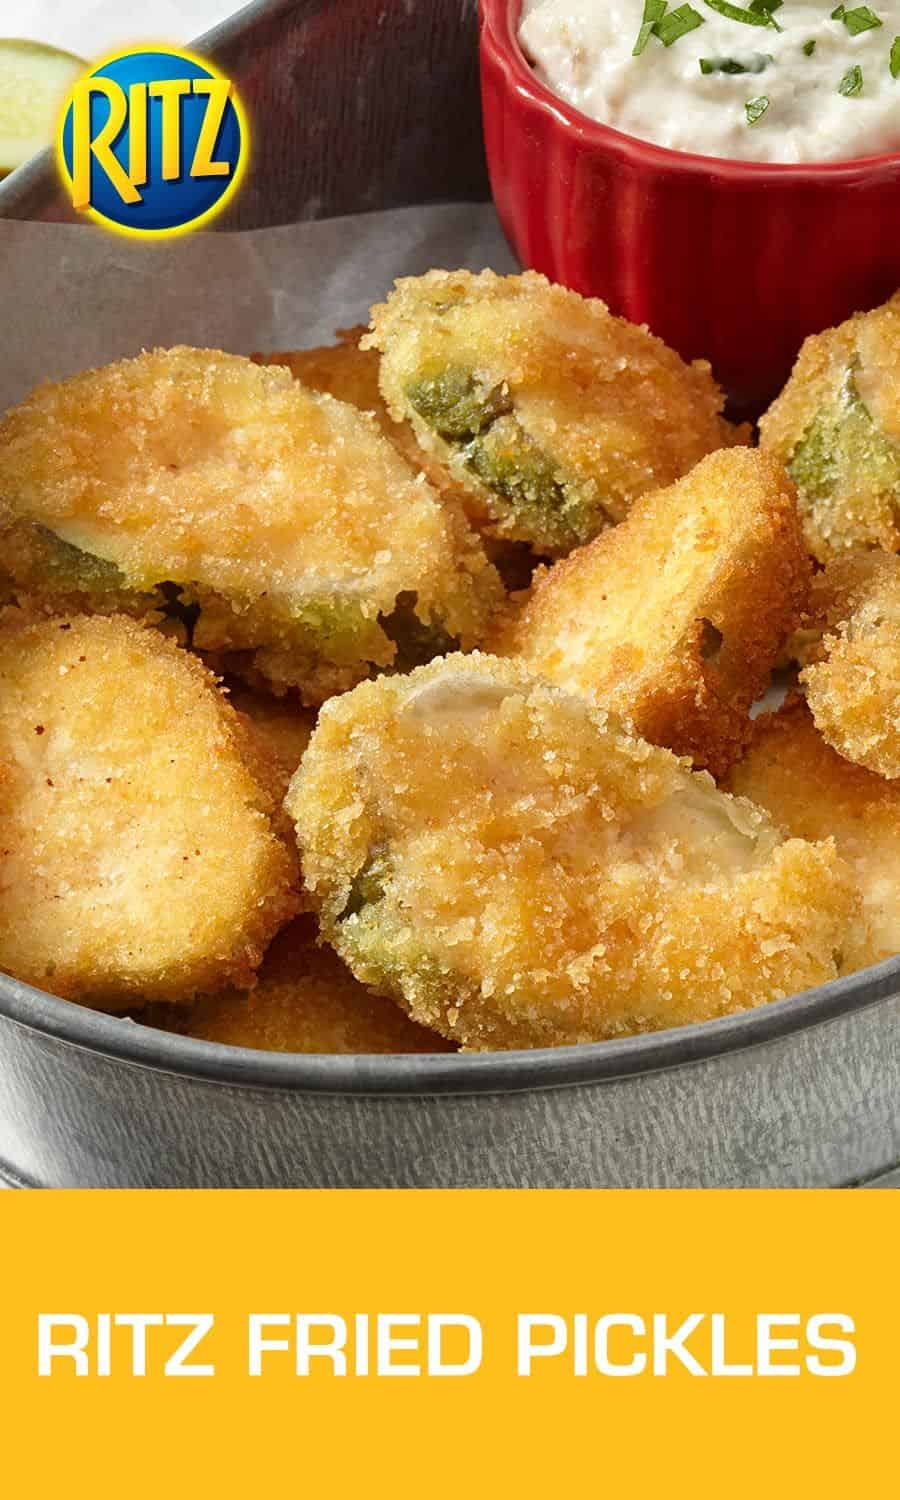 Ritz fried pickles